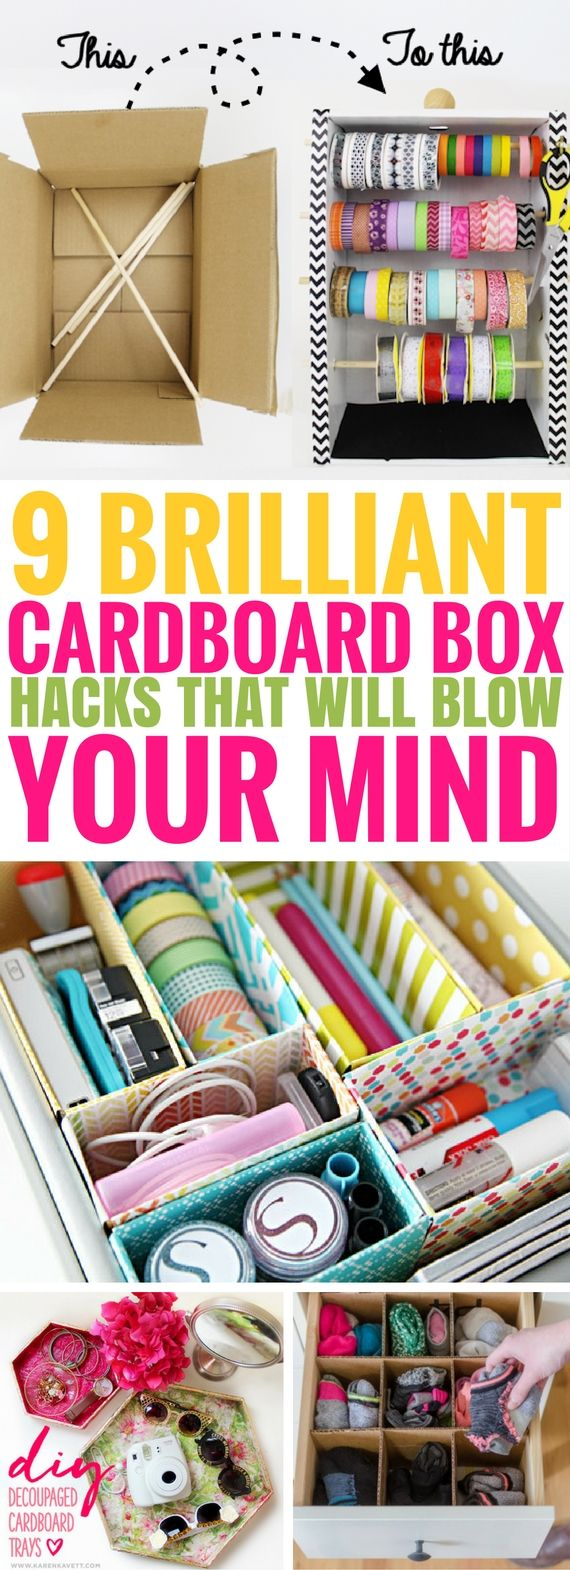 9 Effortless Cardboard Box Hacks You Need To Try -   19 cardboard crafts organizers